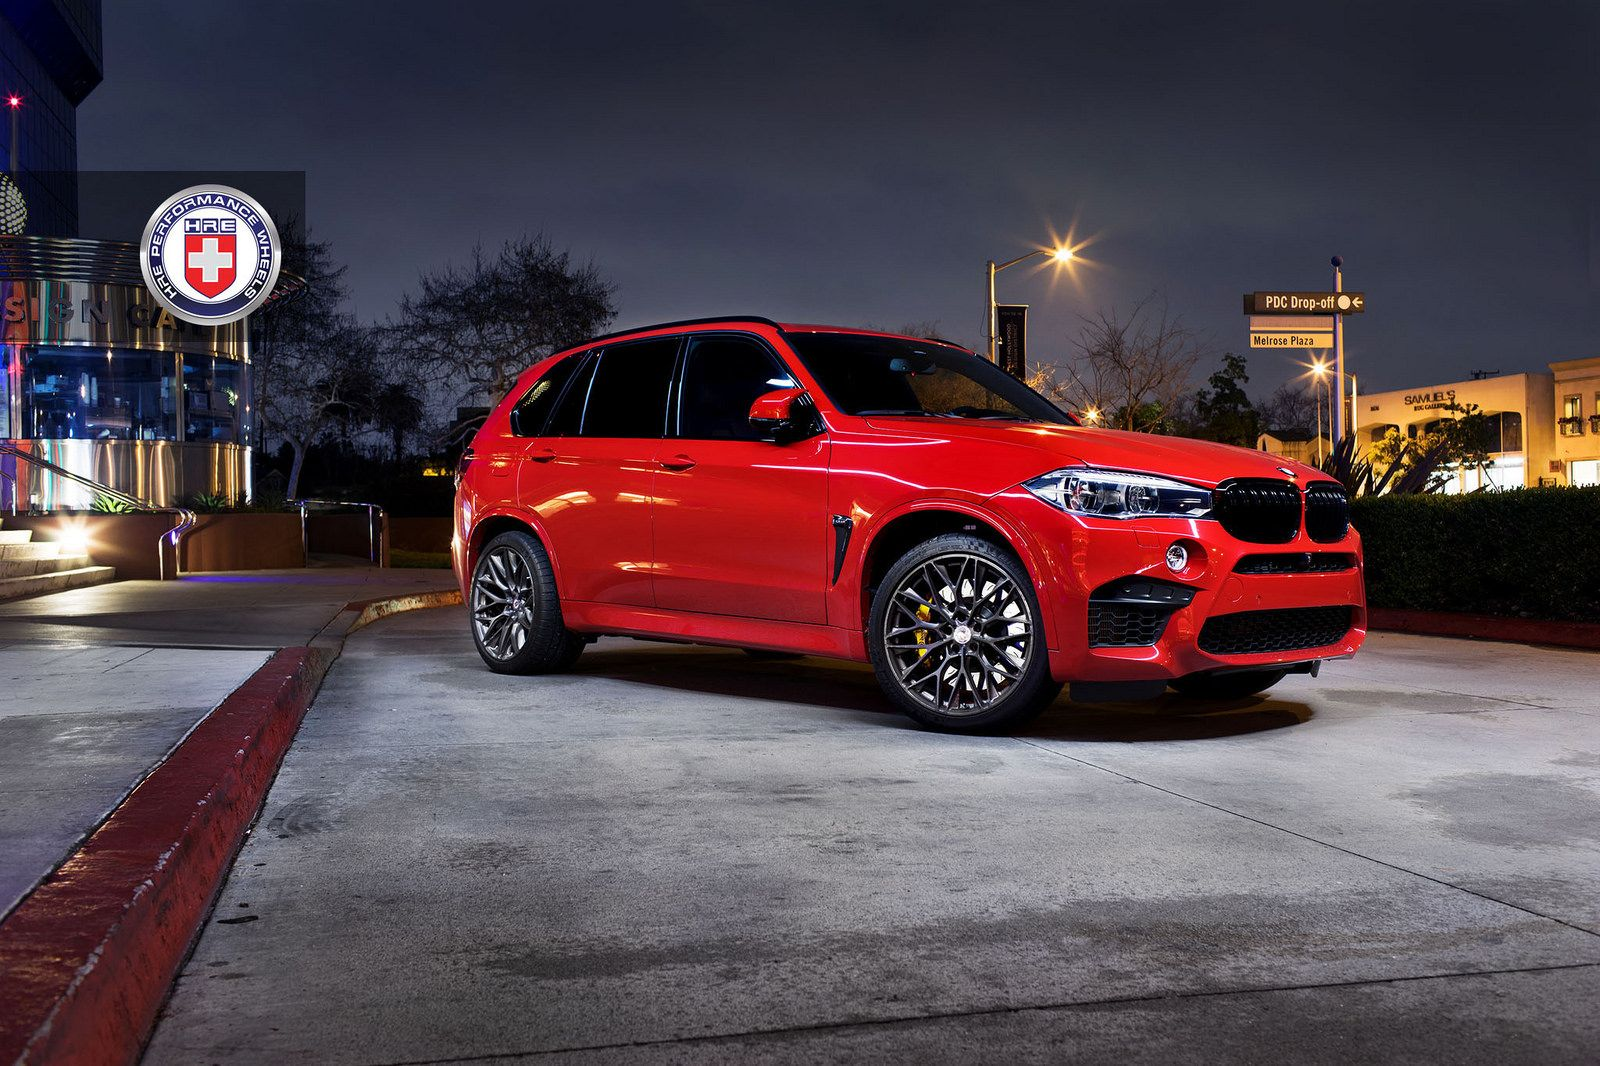 Incroyable Melbourne Red BMW X5 M With HRE P200 Wheels In Brushed Dark Clear   Http: